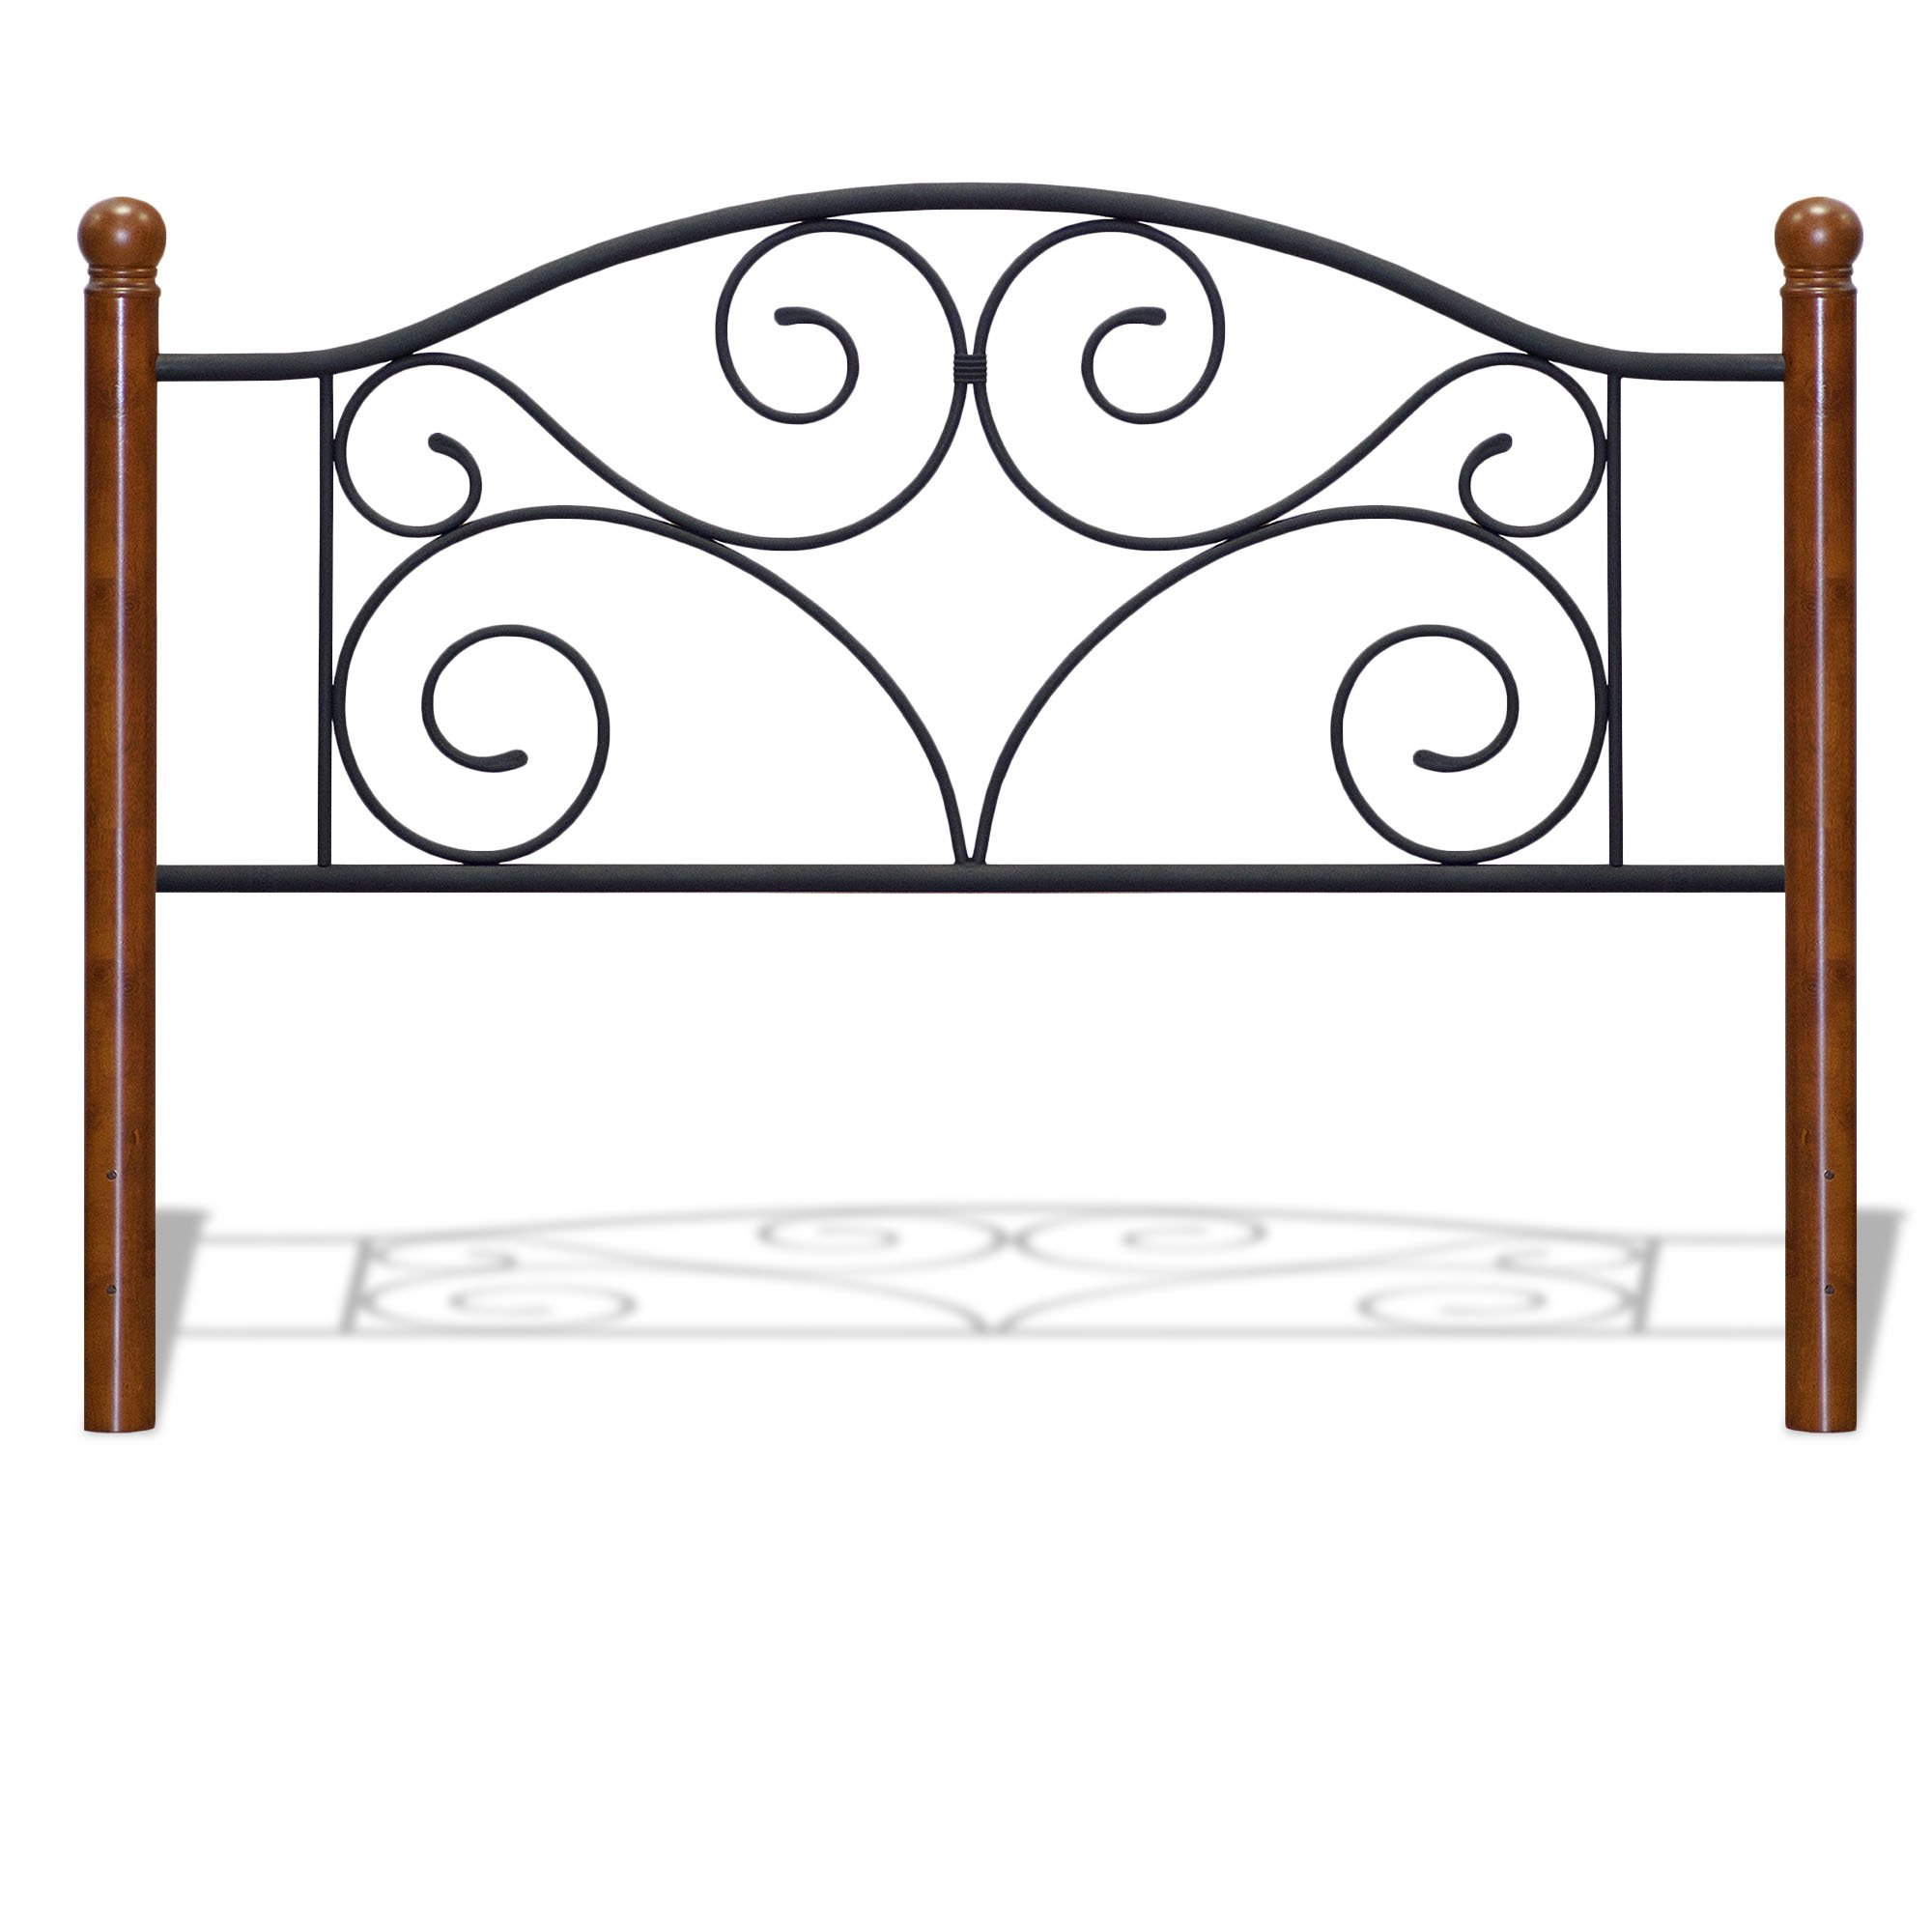 Fashion Bed Group Doral Headboard with Dark Walnut Wood Posts and Metal Grill, Matte Black Finish, Twin